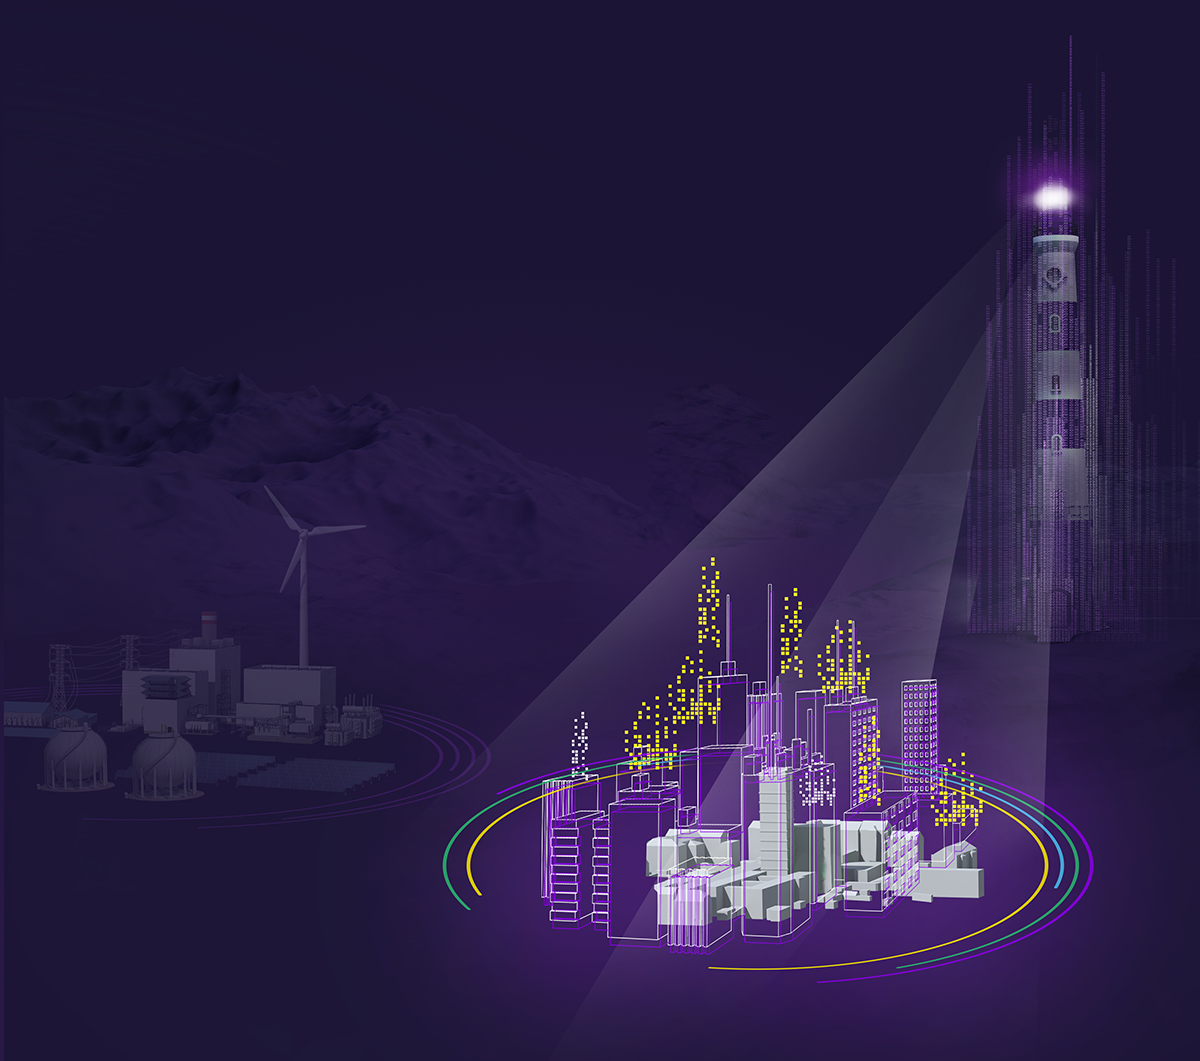 Securing the energy revolution and IoT future 1